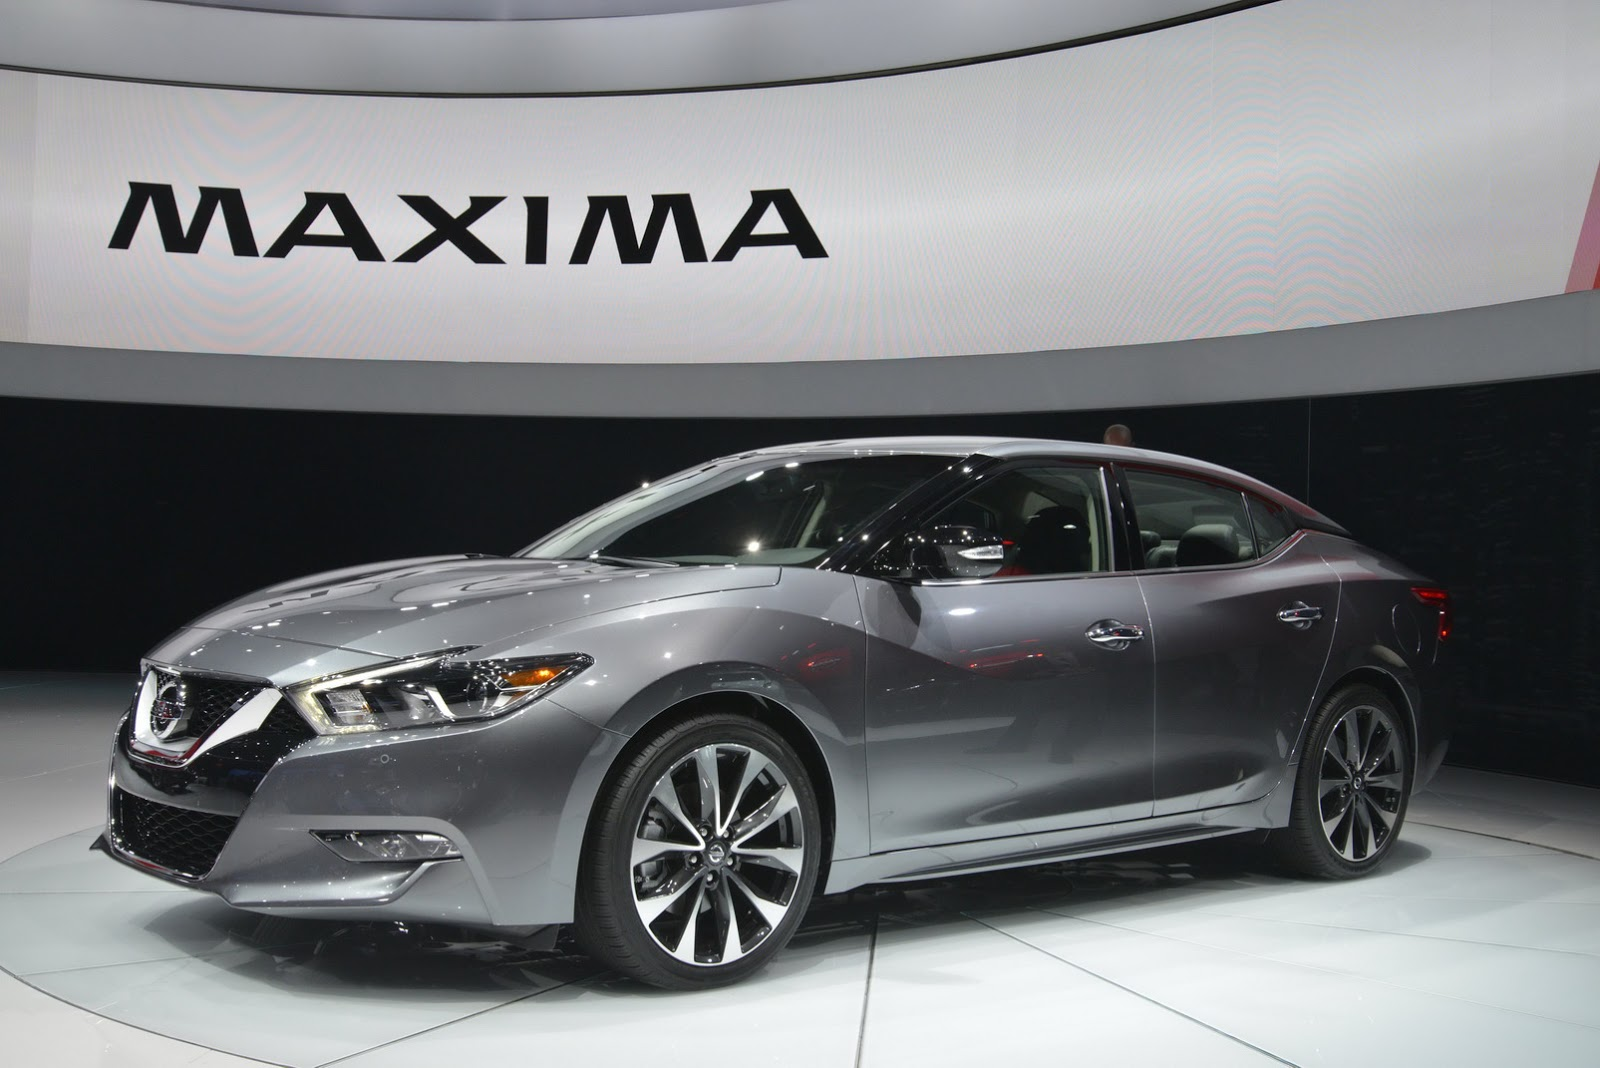 Carros Nissan Altima >> Nissan's Stunning All-New 2016 Maxima Revealed in New York [77 Pics] | Carscoops